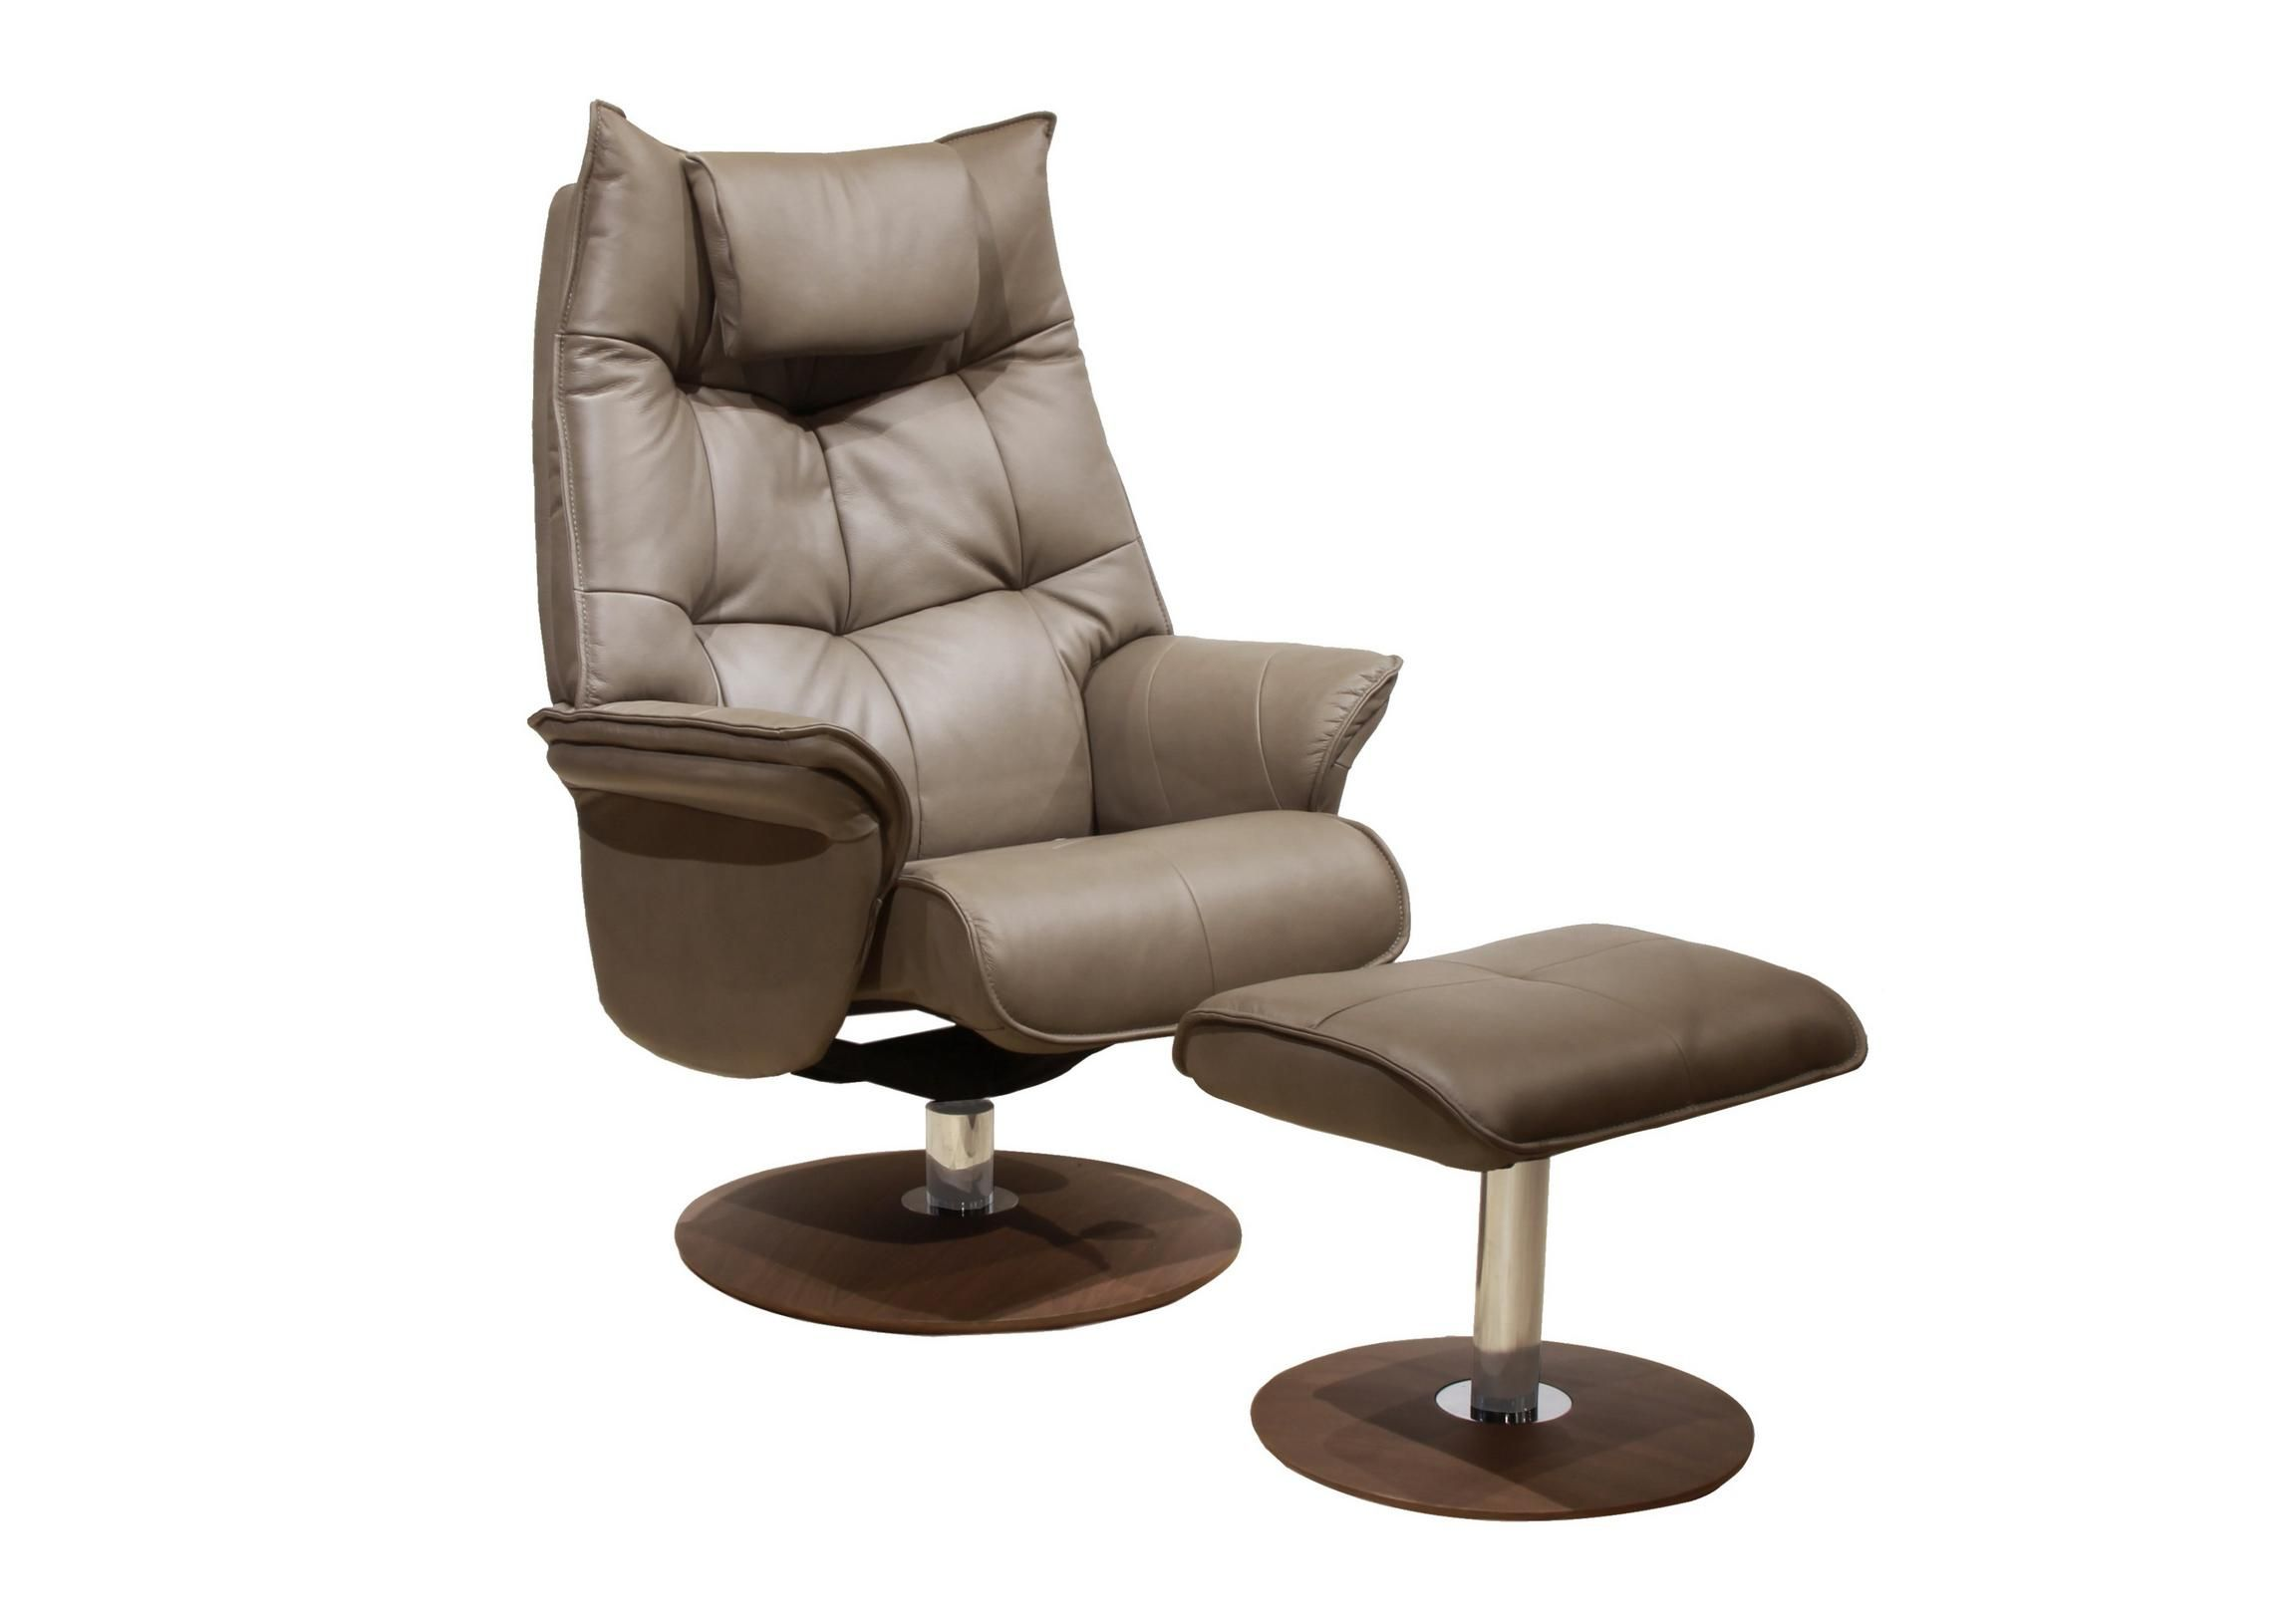 Modern stylish swivel recliner chair with footstool in